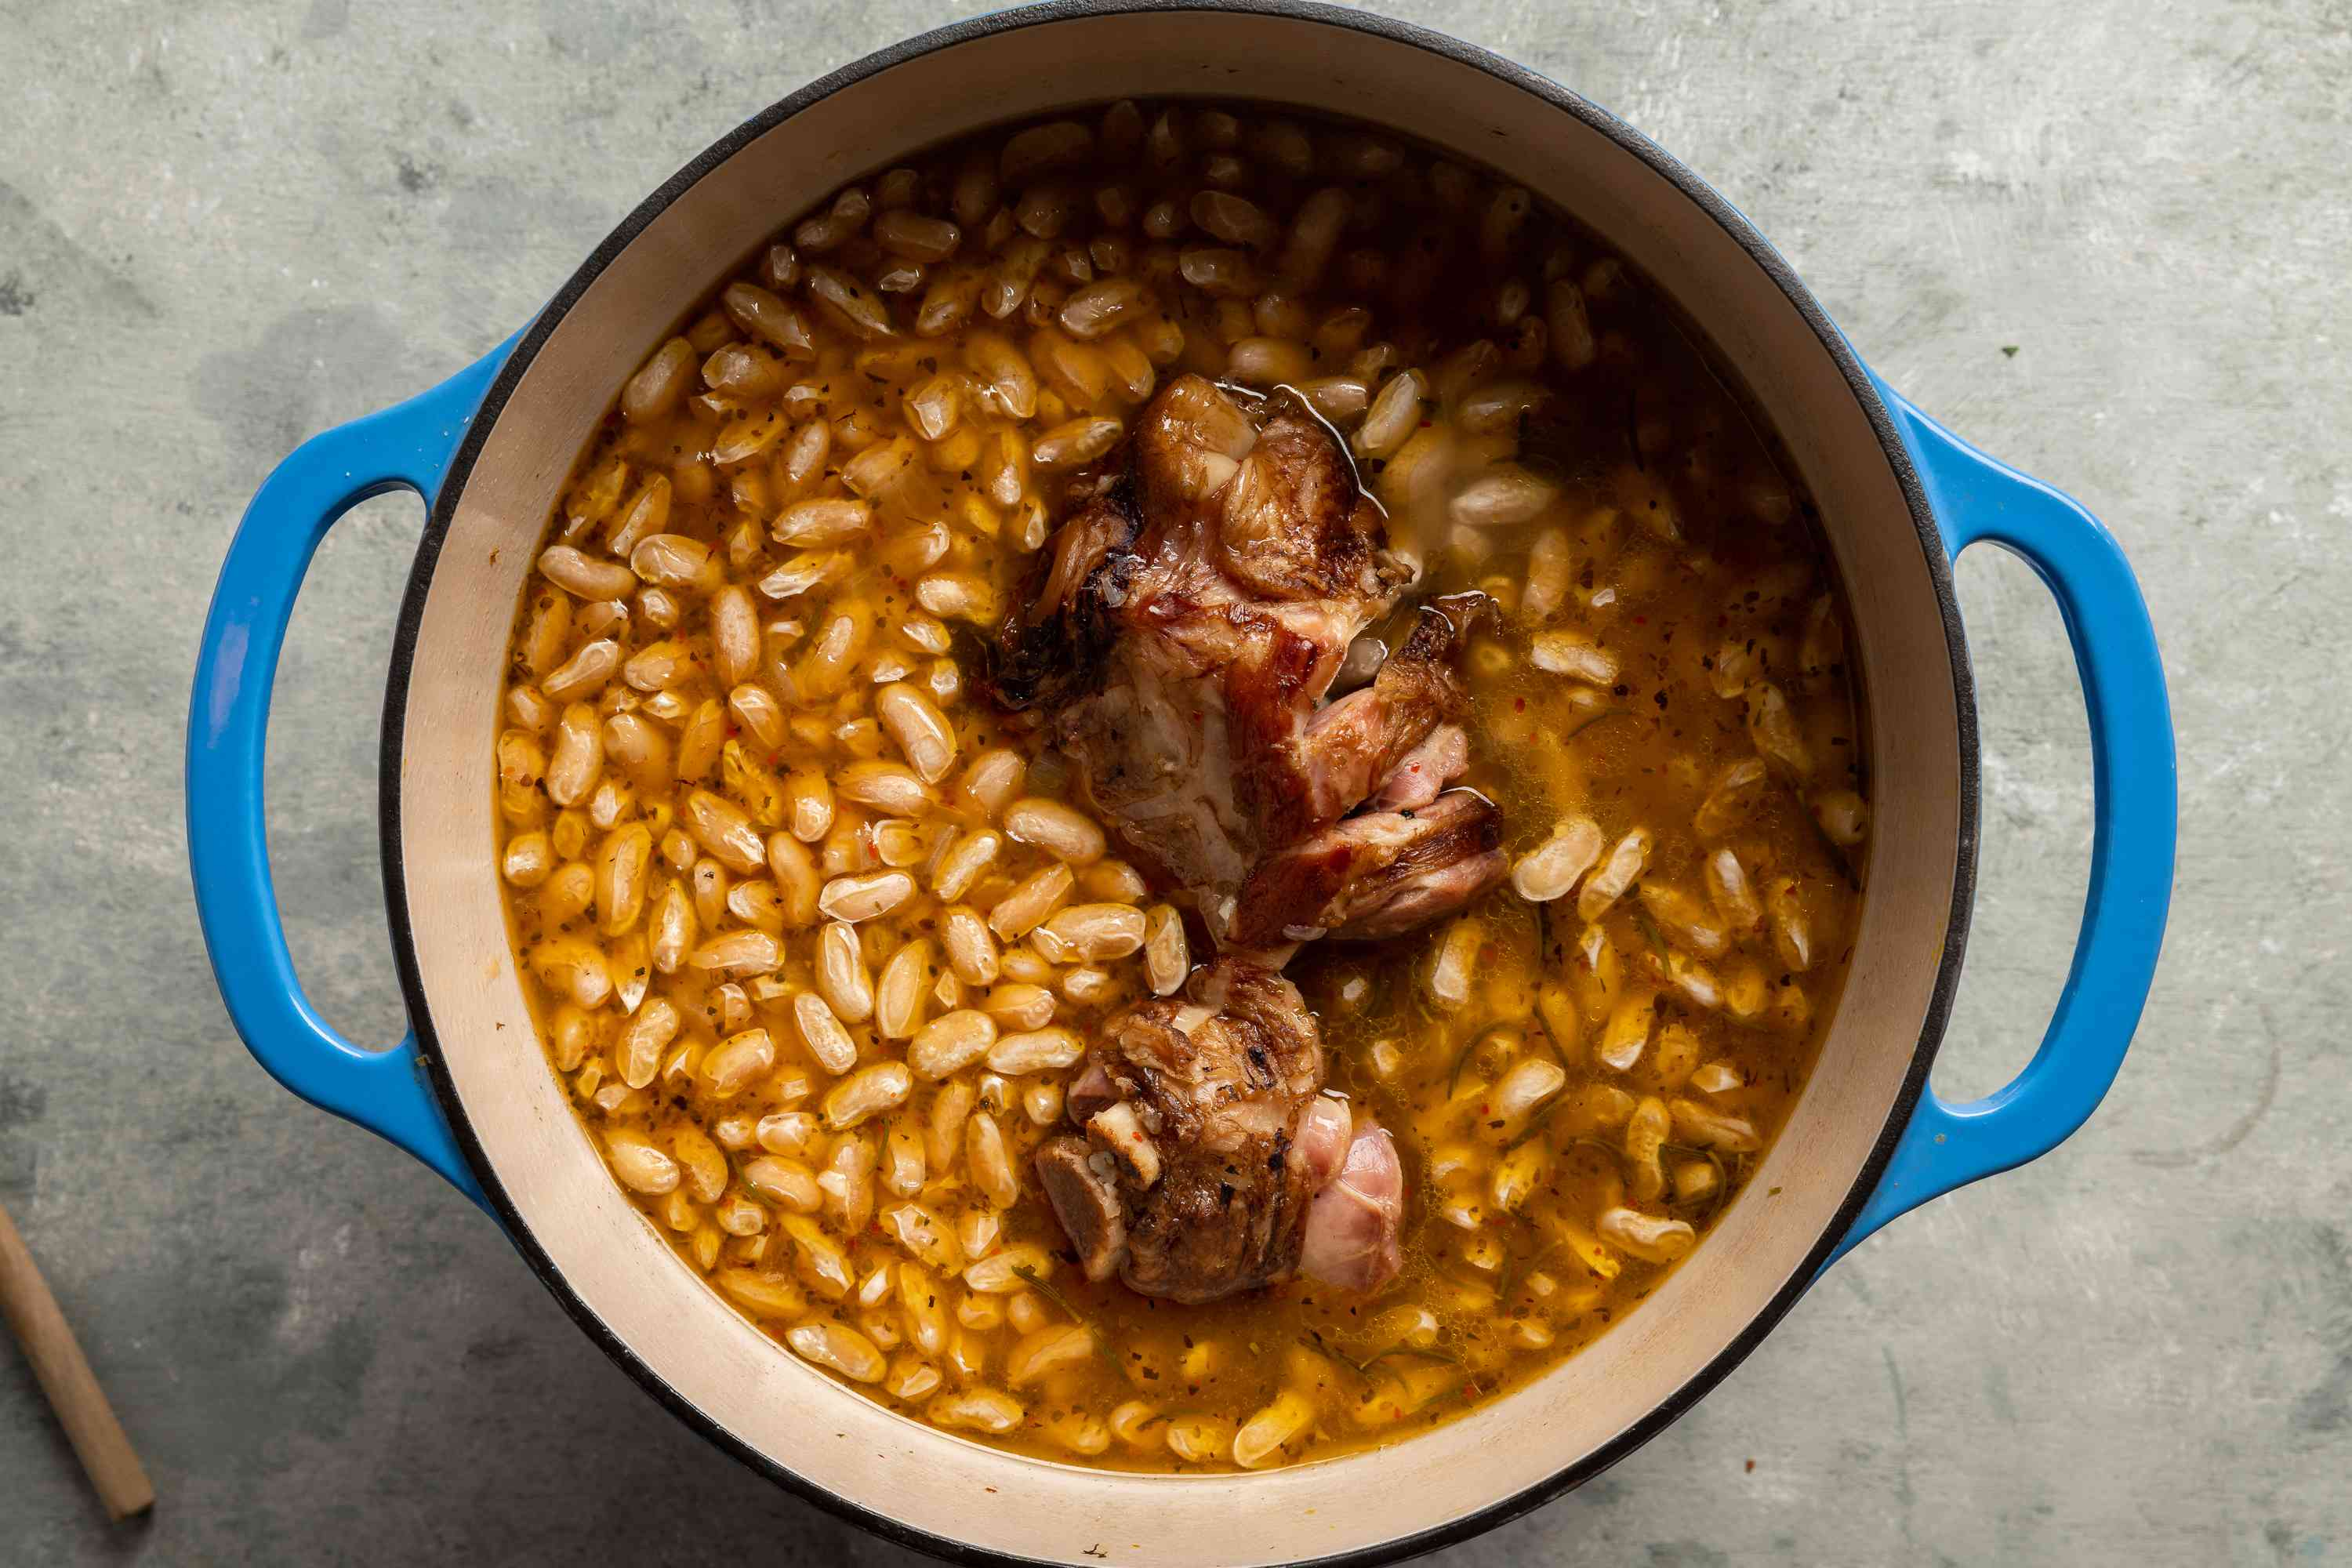 cook the bean and ham shank mixture in the Dutch oven